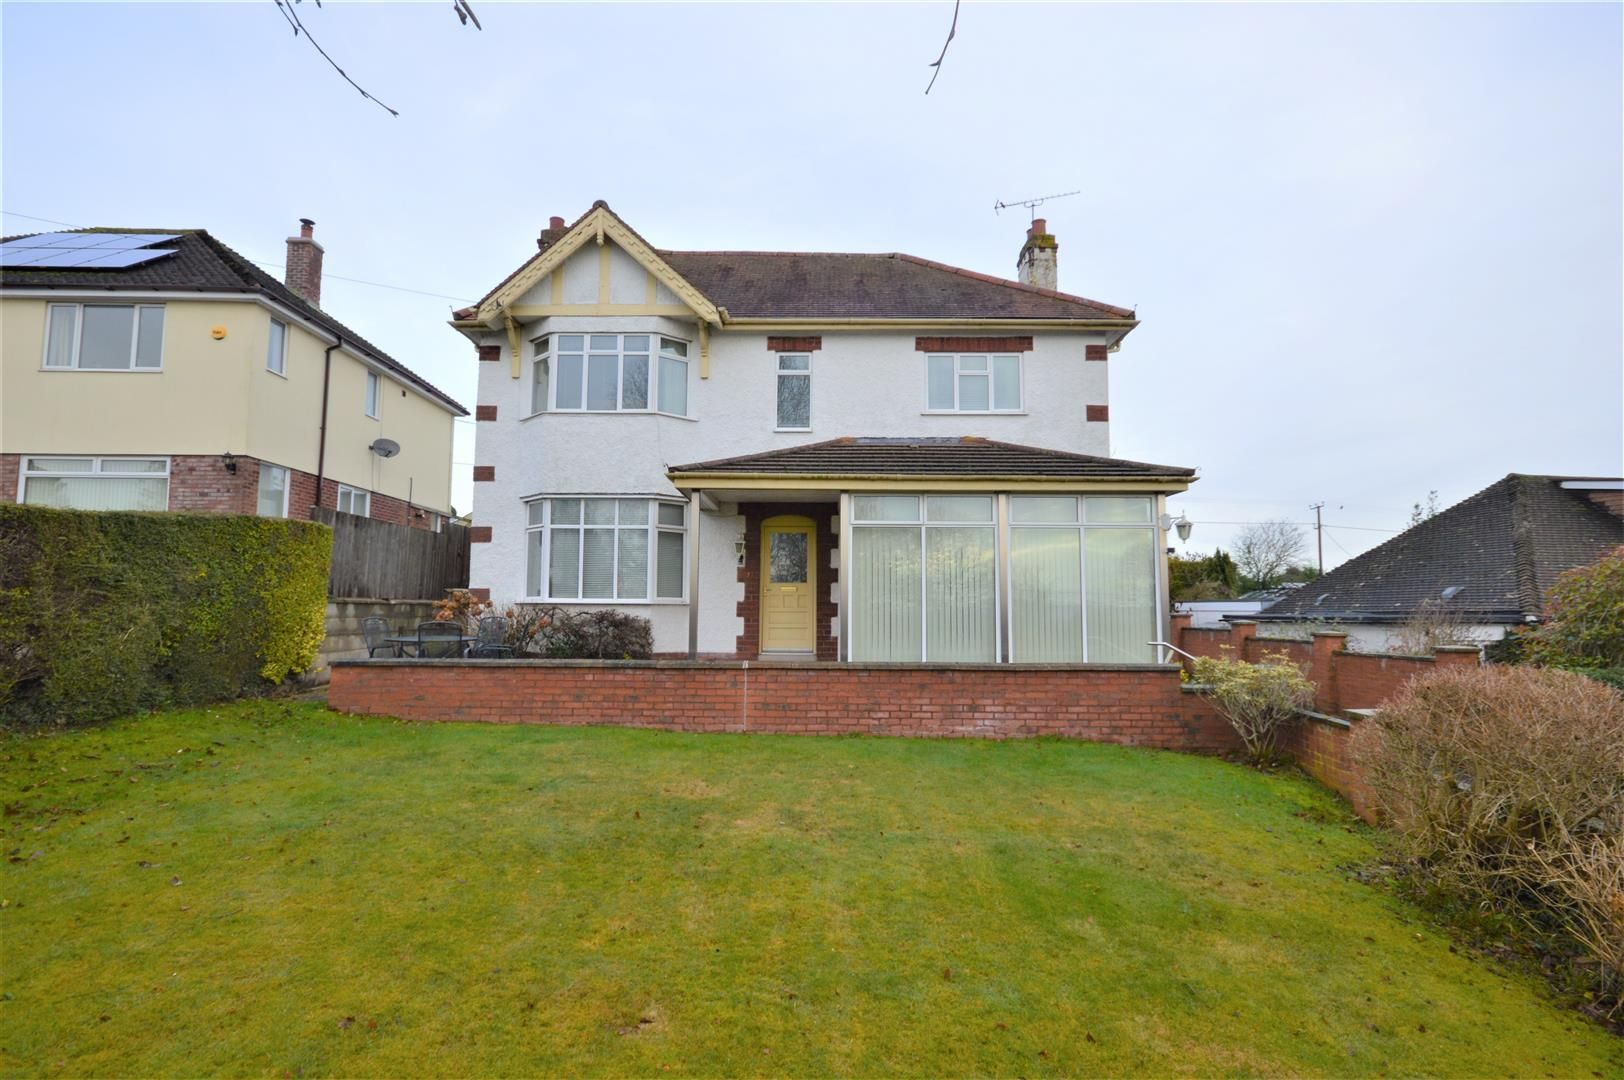 4 bed detached for sale in Bobblestock 18